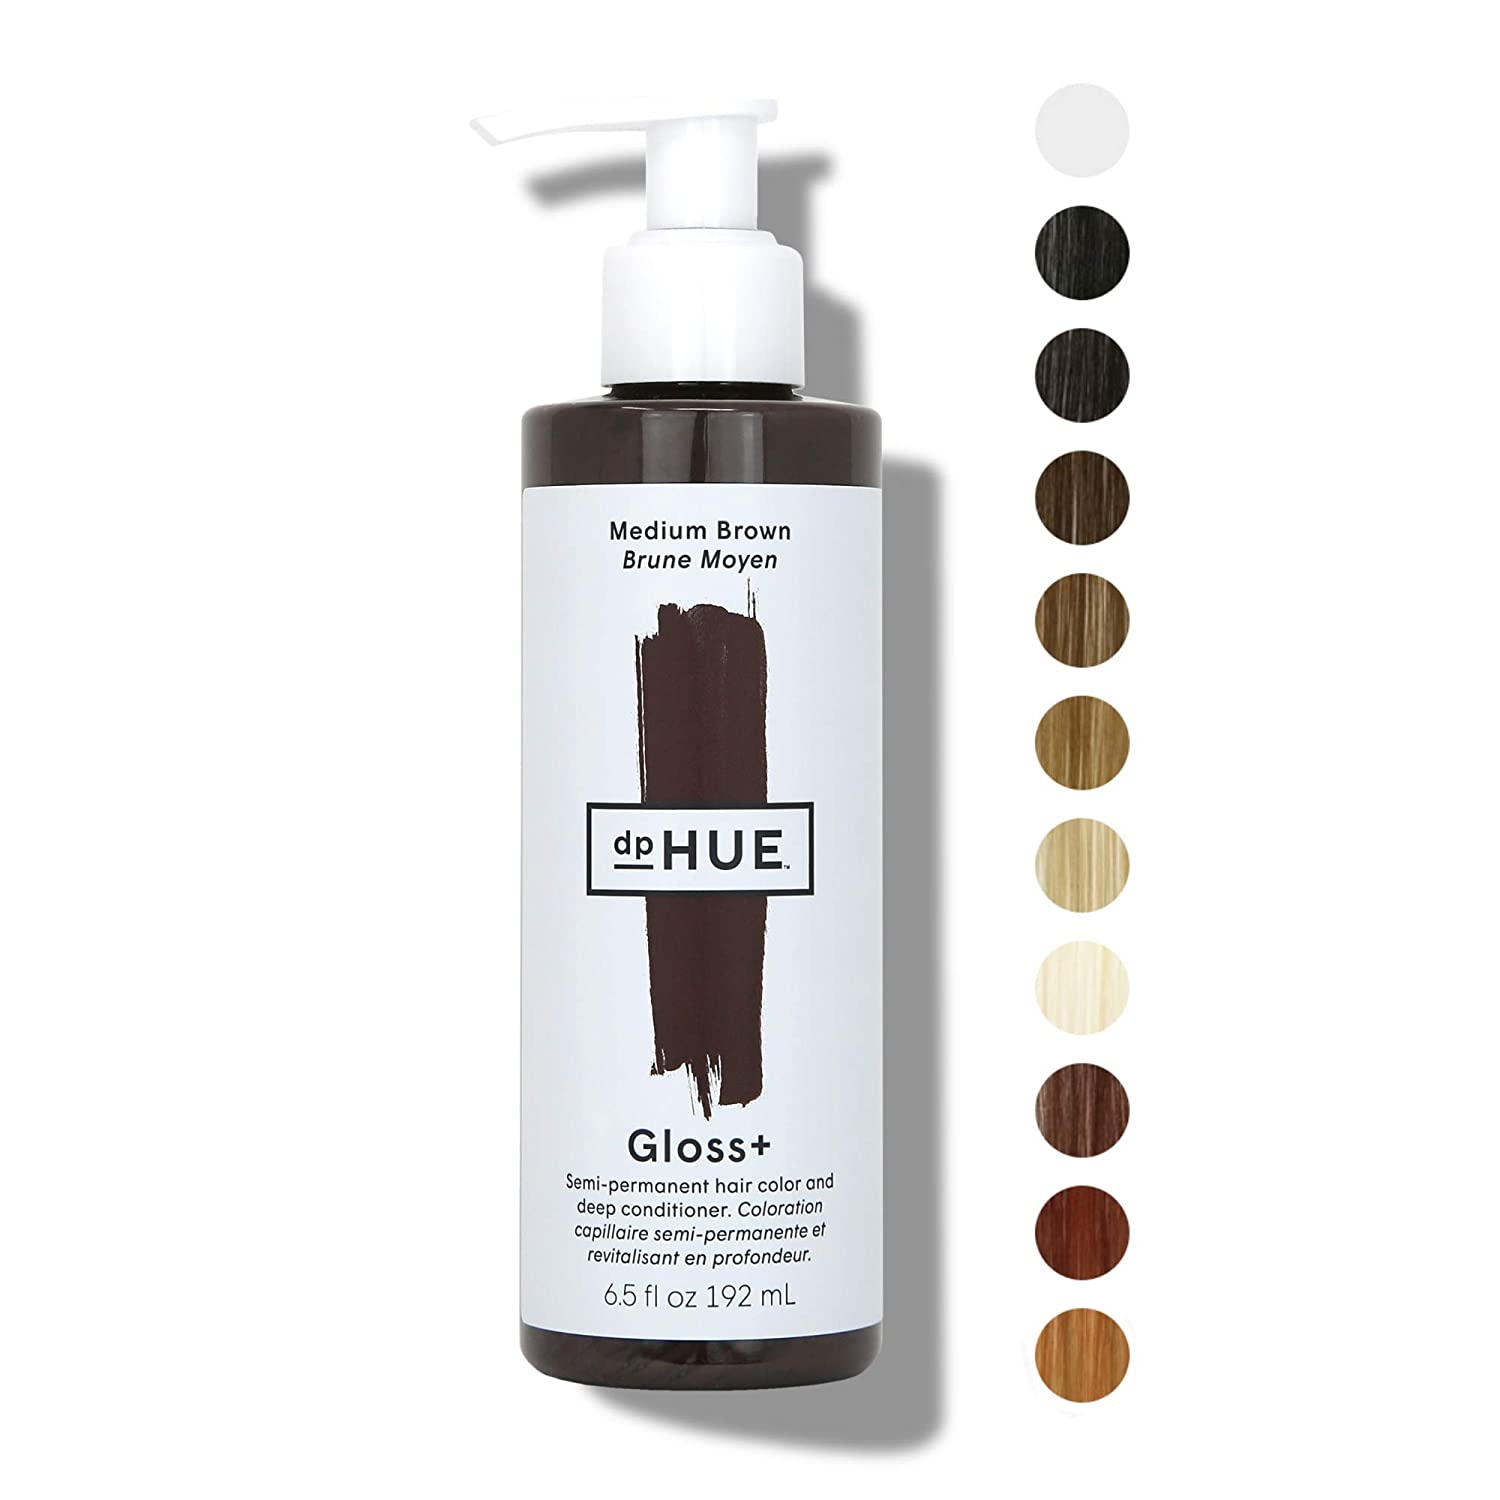 top 10 best home hair dyes for fabulous hair herstylecode 3 Top 10 Best Home Hair Dyes for Fabulous Hair